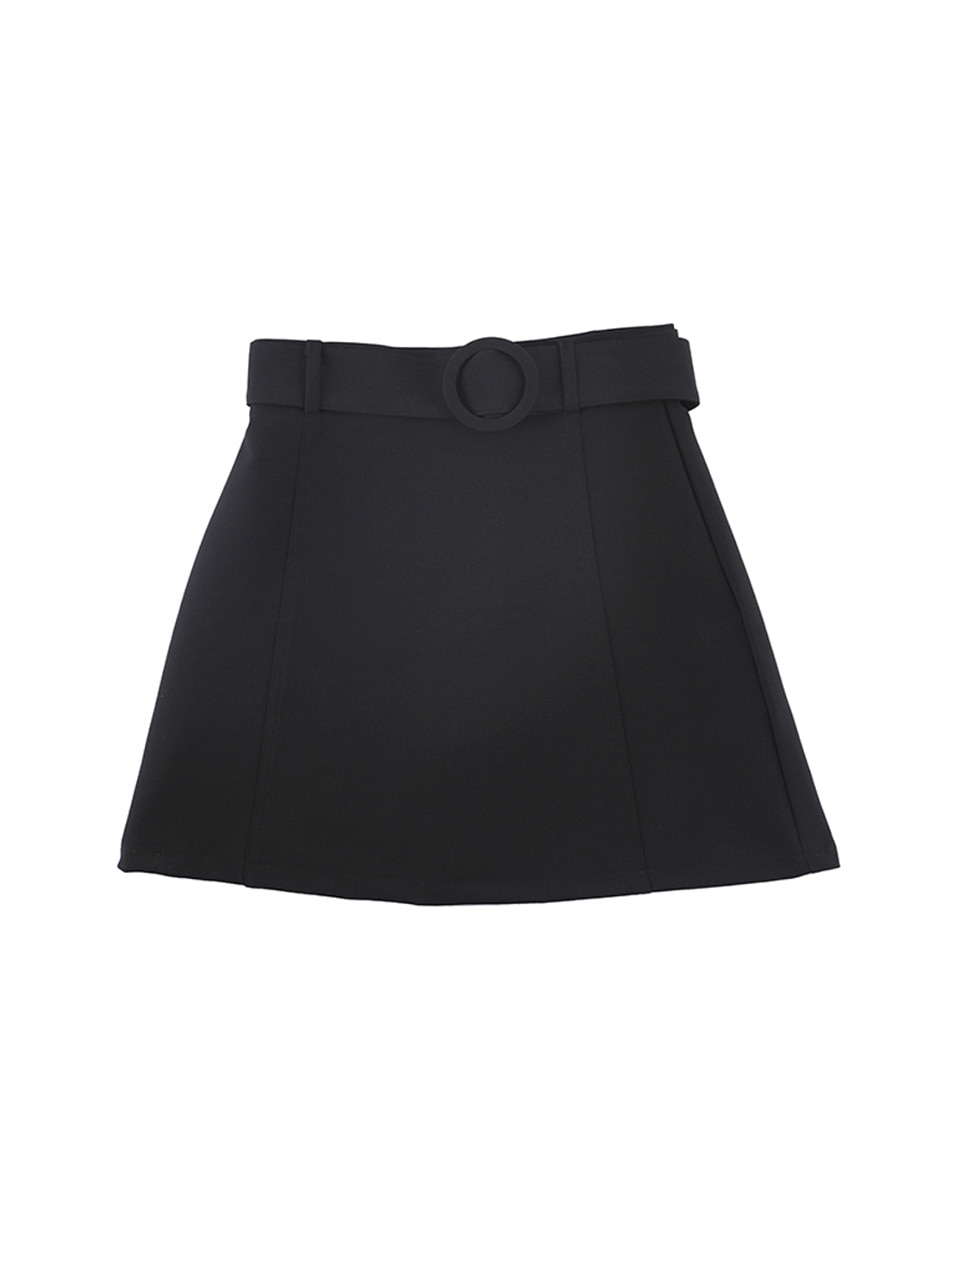 mgmg circle belt skirt_black